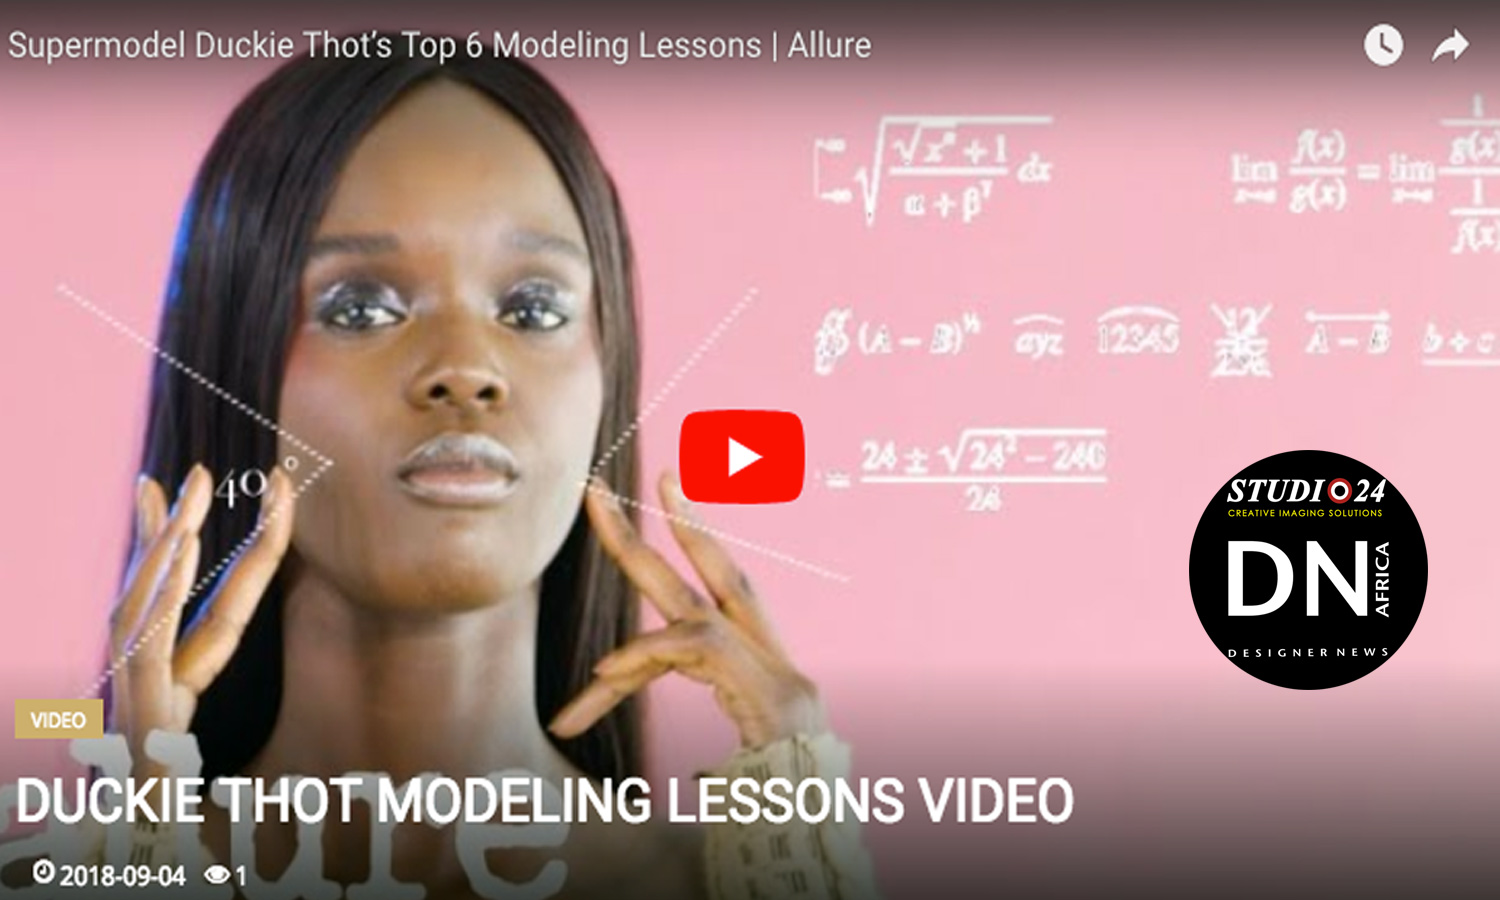 AFRICAN FASHION STYLE MAGAZINE - Supermodel-Duckie-Thot's-Top-6-Modeling-Lessons-Allure - Media Partner DN MAG, DN AFRICA -STUDIO 24 NIGERIA - STUDIO 24 INTERNATIONAL